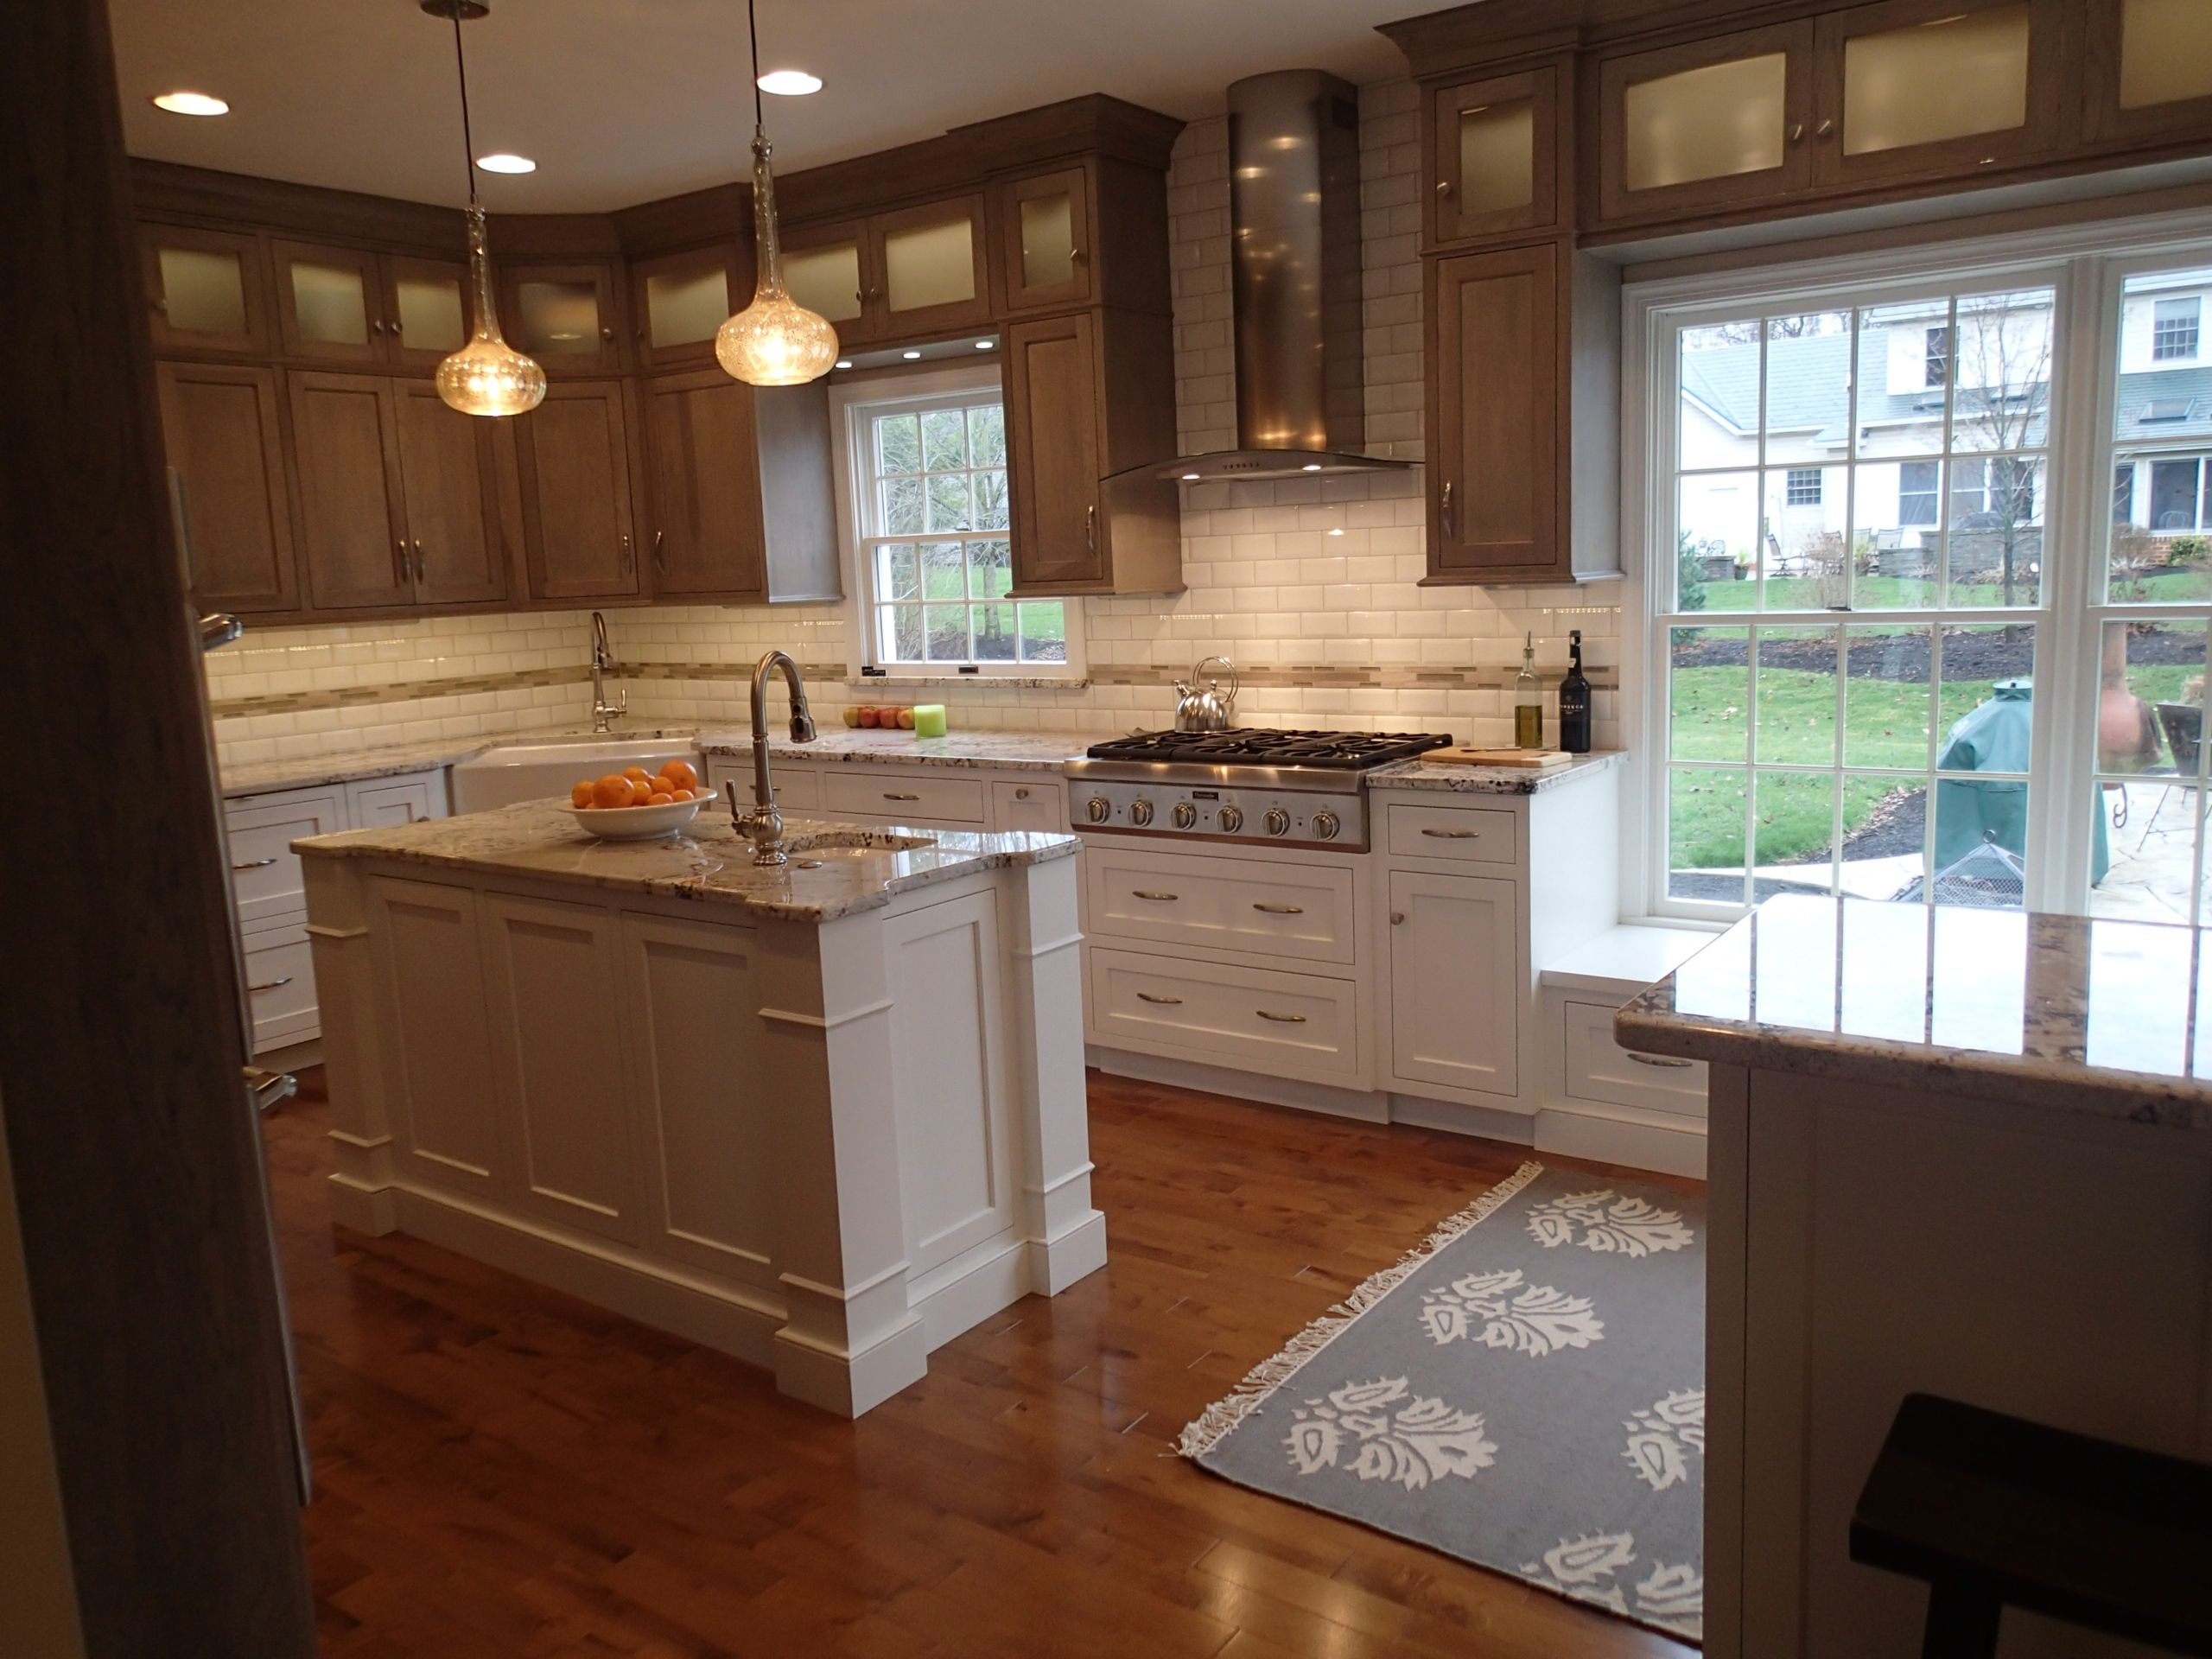 2 island Kitchen with integrated window seat & table seating